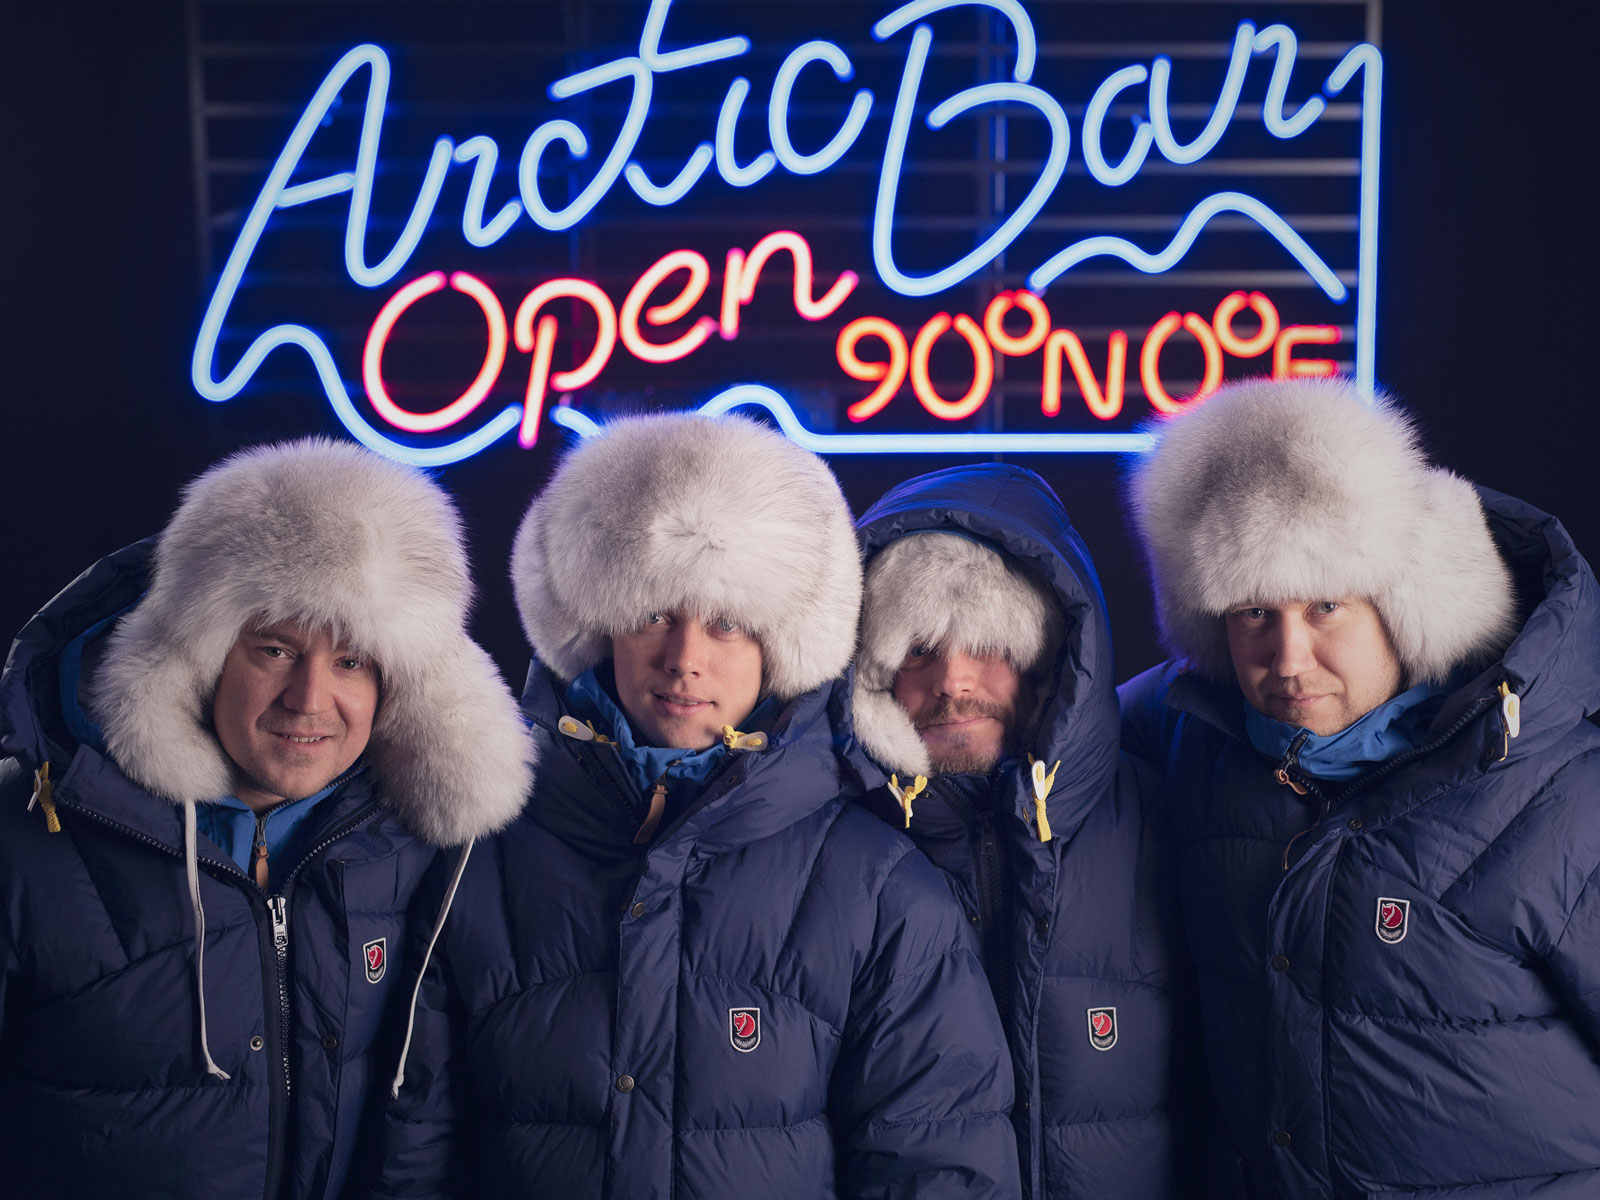 North Pole bar